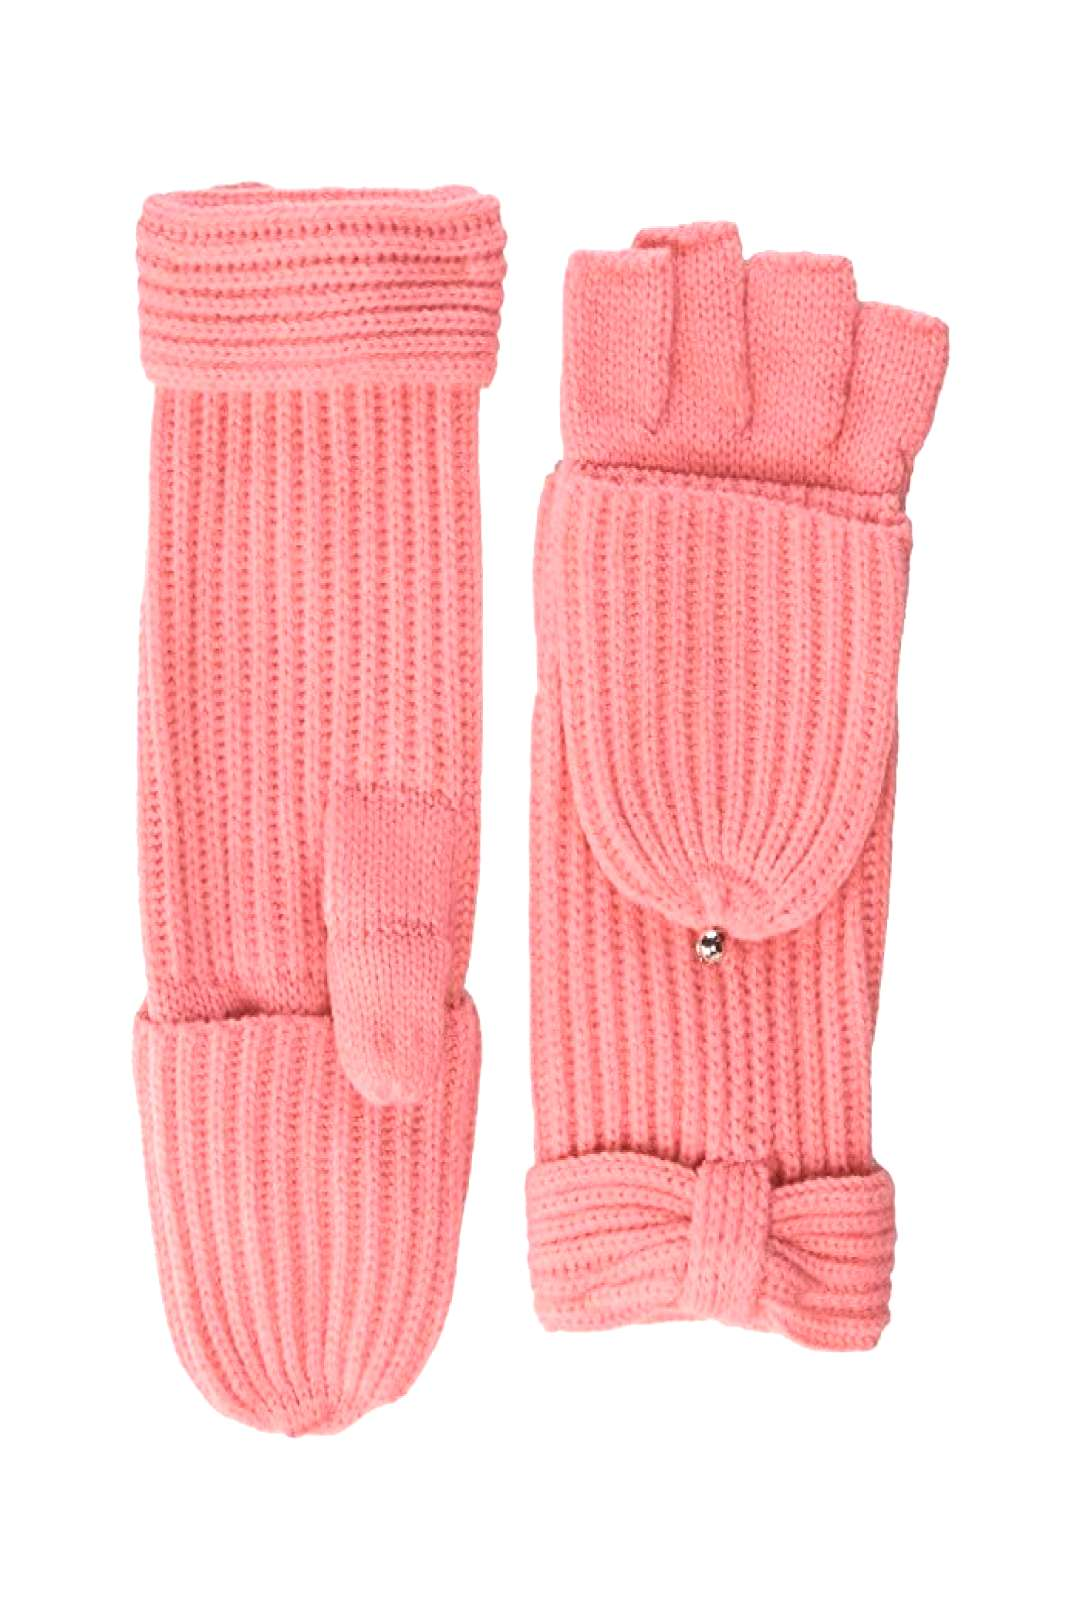 Kate Spade New York Solid Bow Pop Top Mitten (Chilled Apricot) Gore-Tex Gloves For the perfect comp